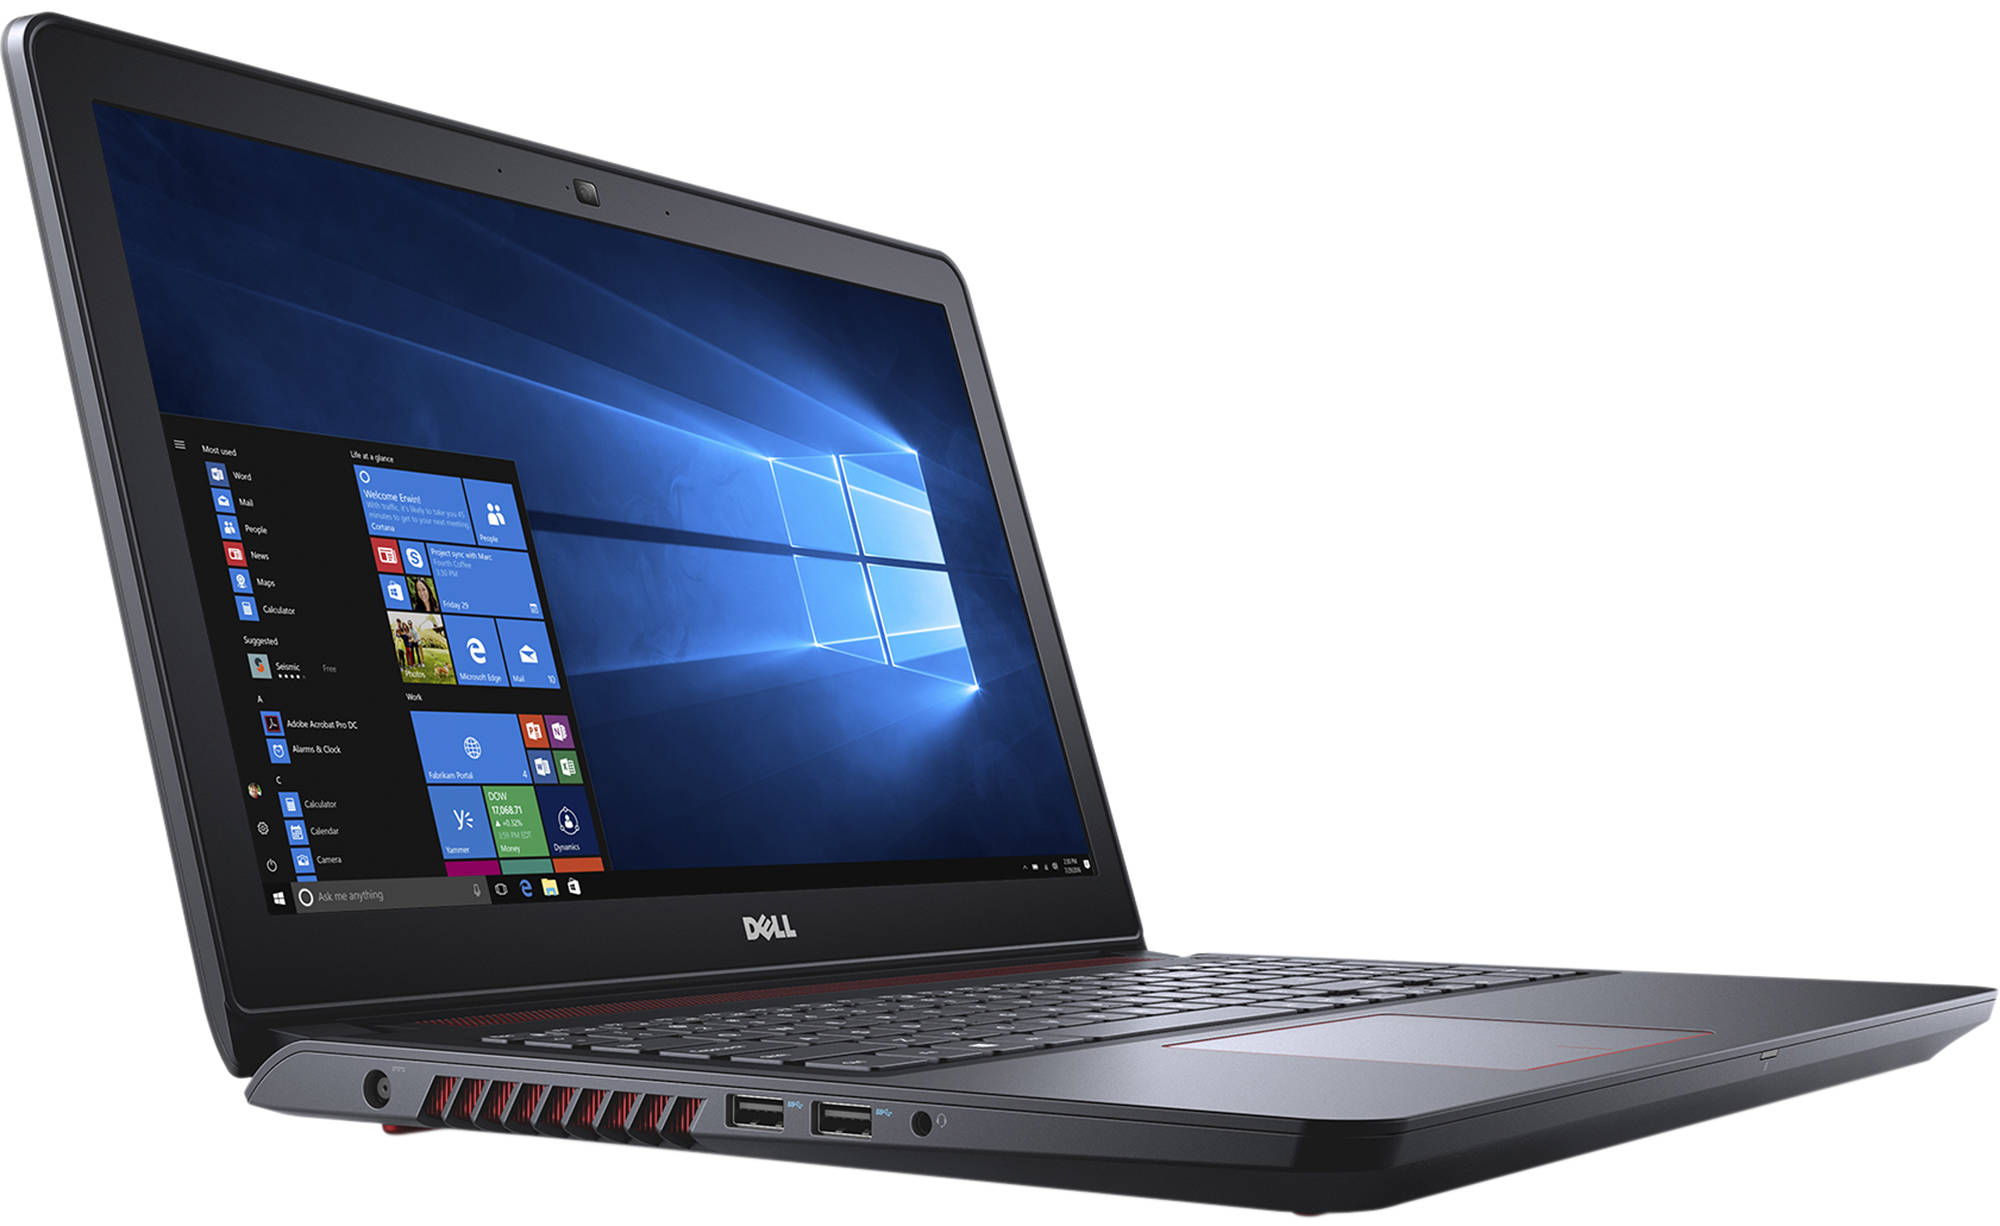 Magnetic Microprocessors Can Make High End Computers In Future Music Production Laptop Buying Guide Bh Explora Dell 156 Inspiron 15 5000 Series Gaming Notebook